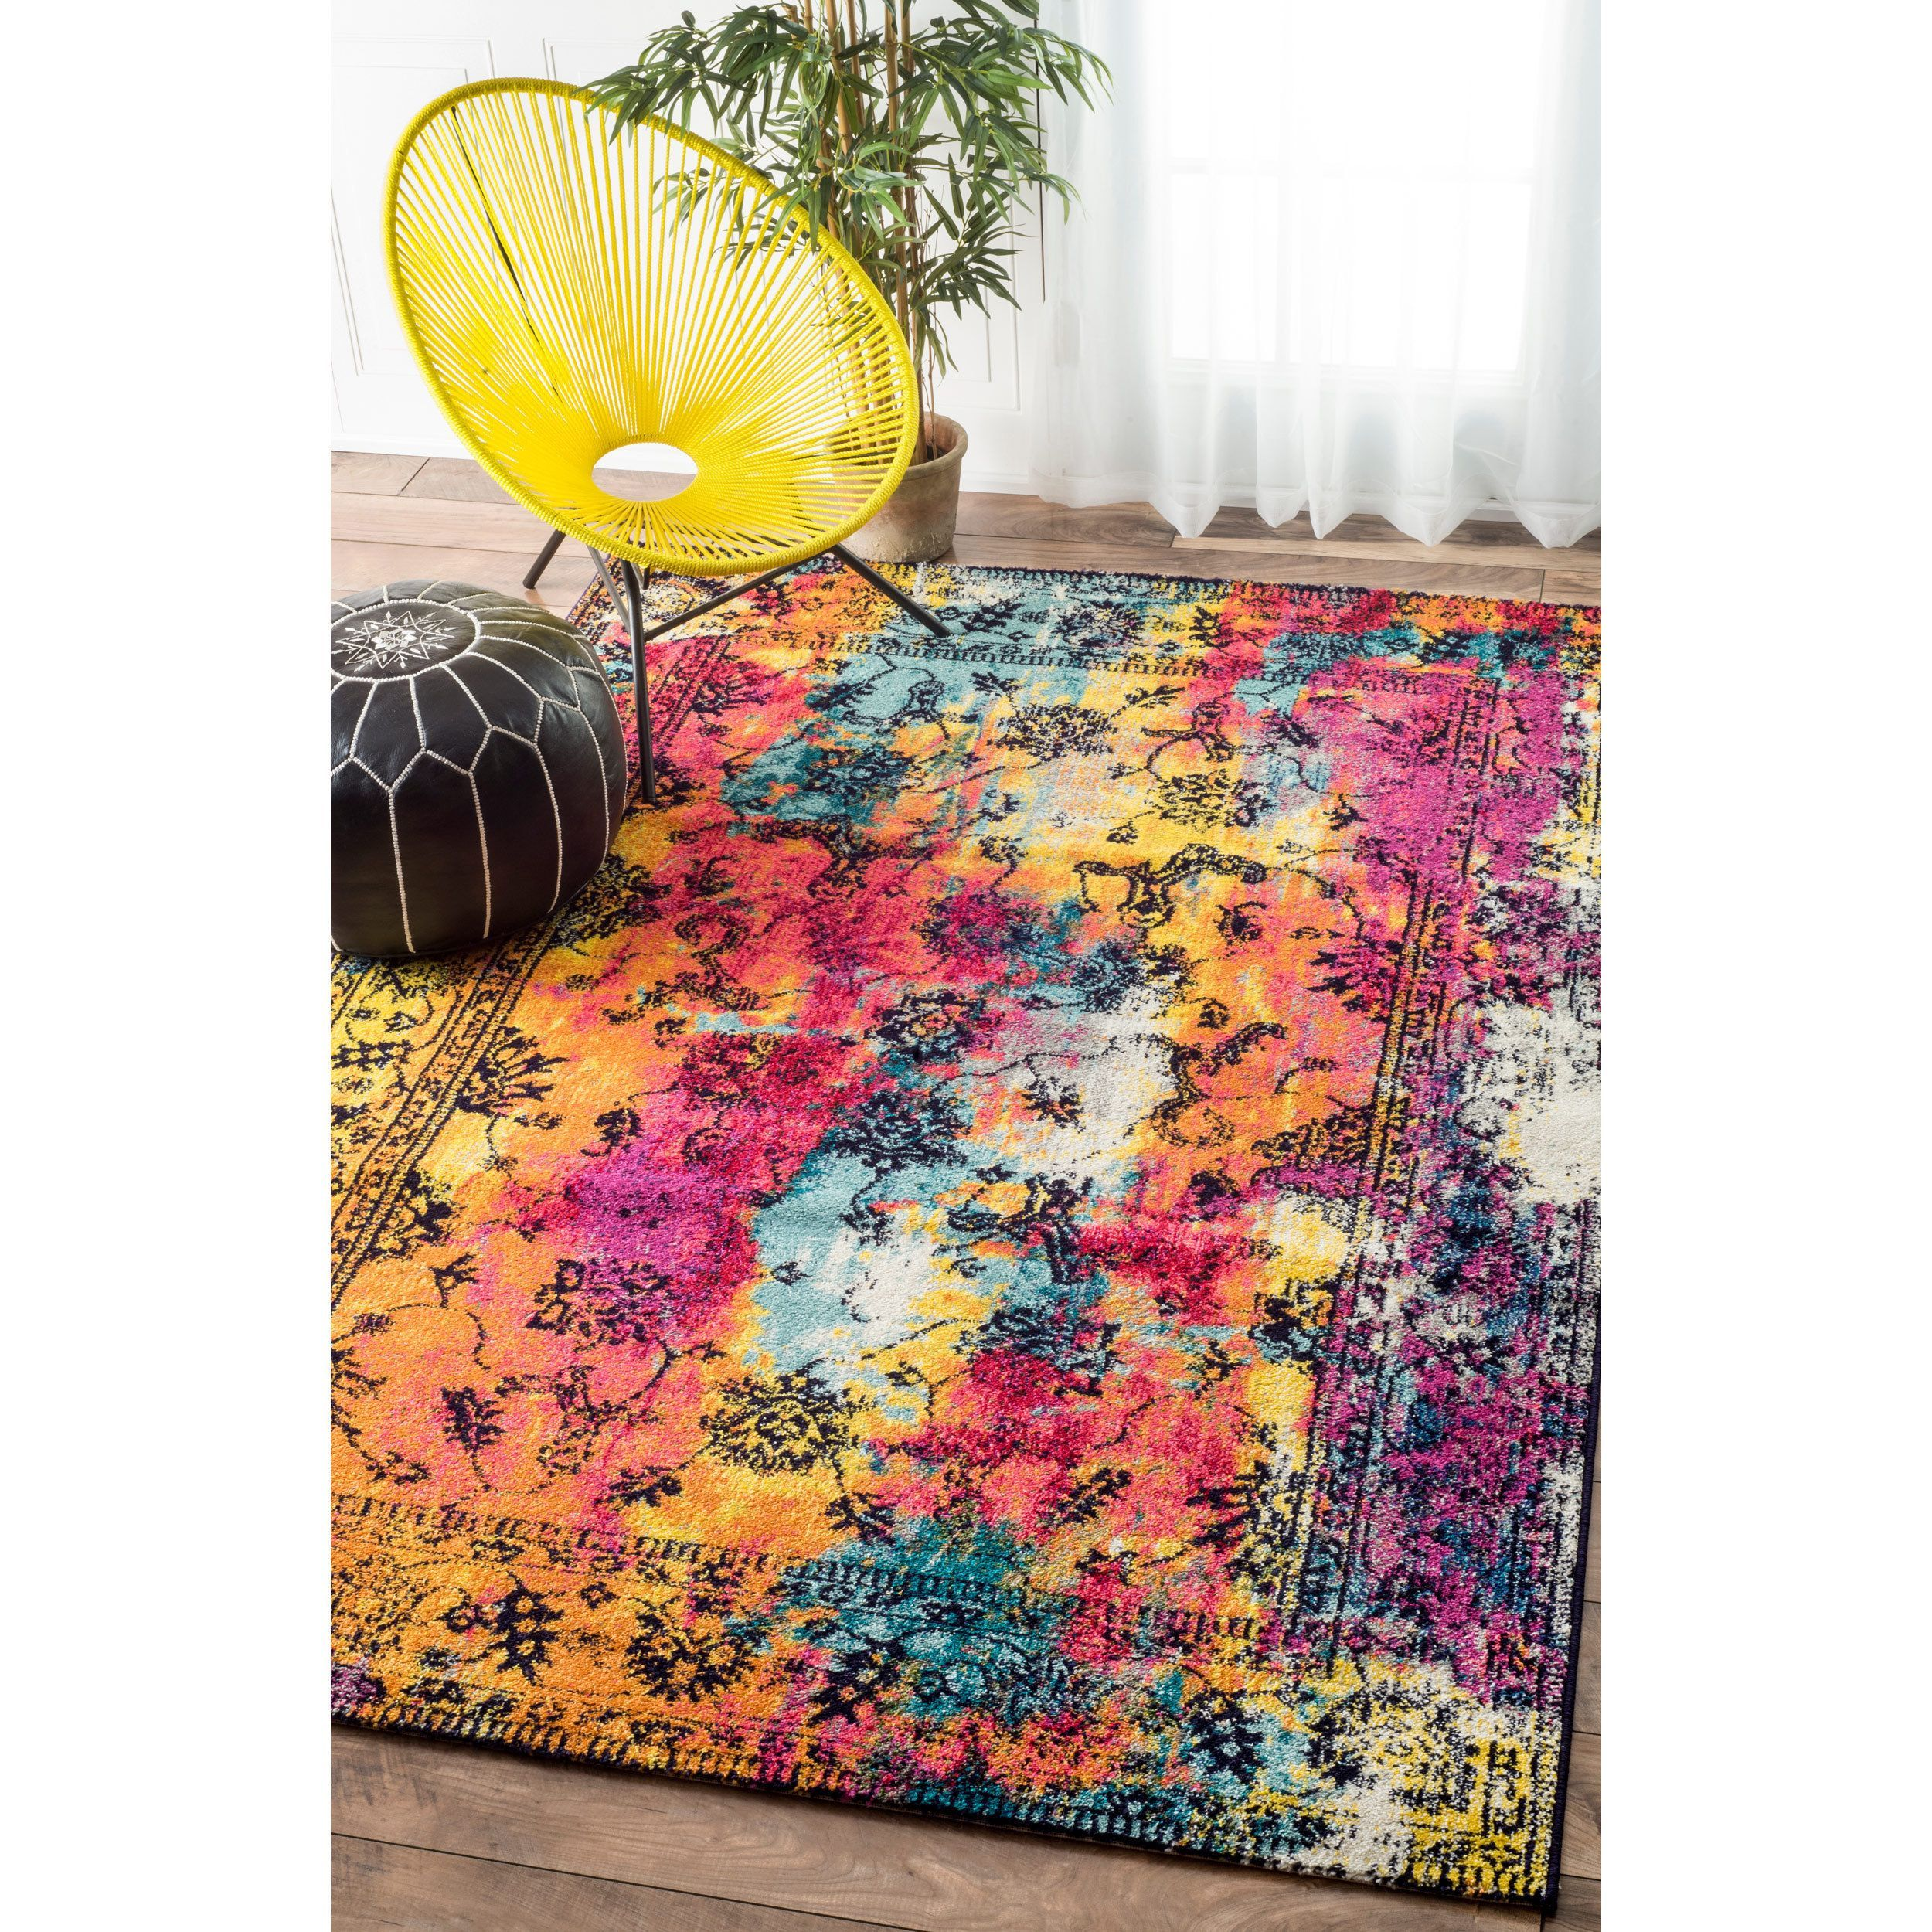 Watercolor Floral Navy Rug Floral Watercolor Navy Rug Washable